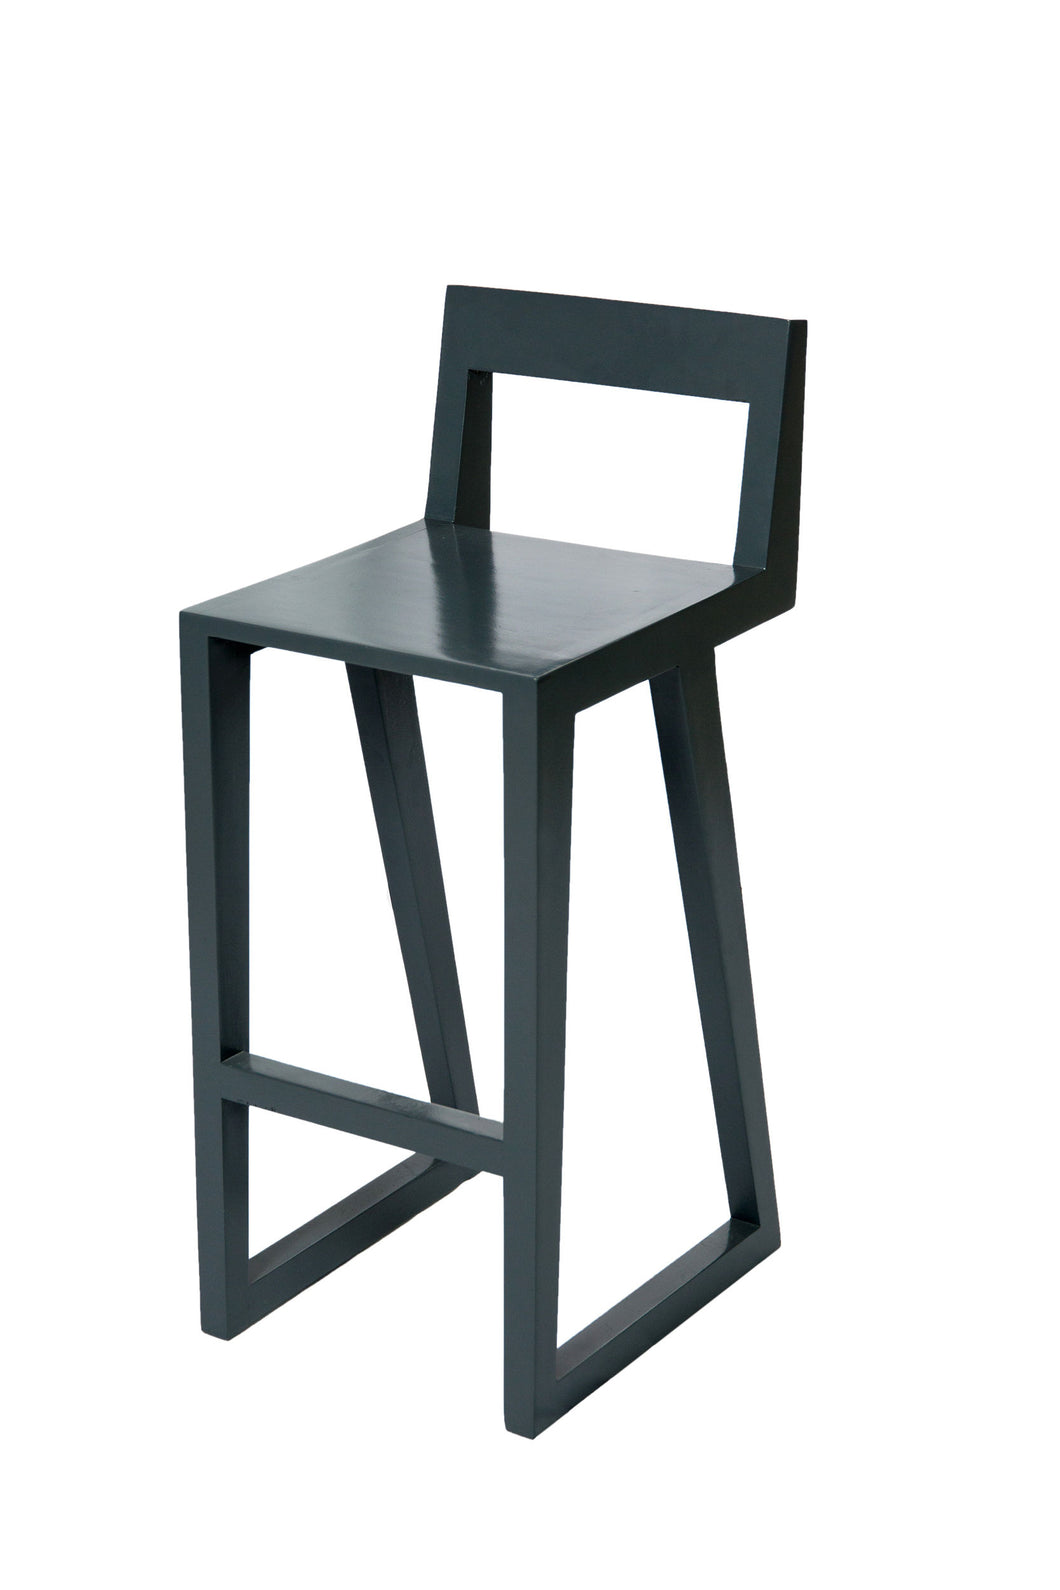 CAFETARIA CHAIR